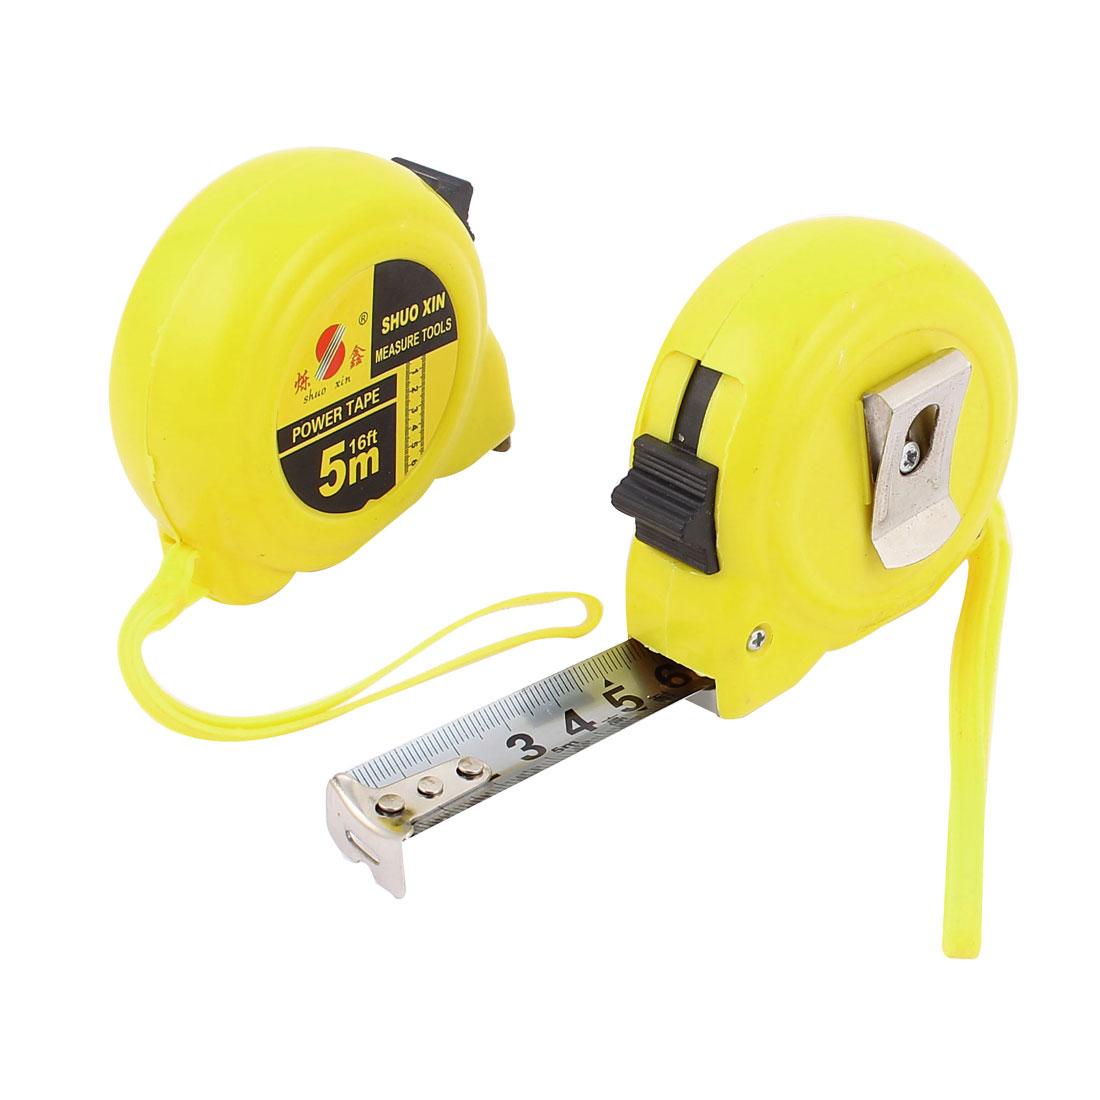 5M Yellow Casing Retractable Lock Button Belt Clip Ruler Metric Tape Measuring Tool 2pcs w String